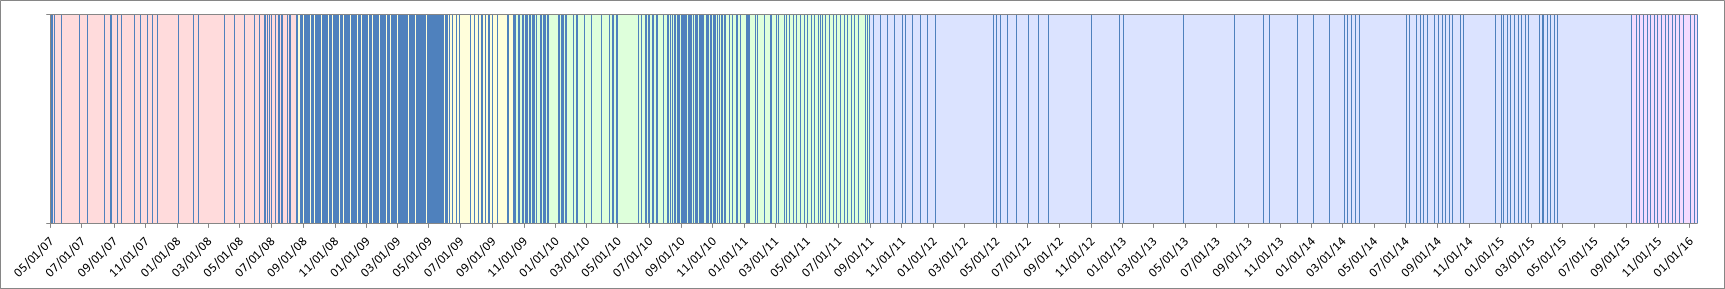 graph of site's posting frequency